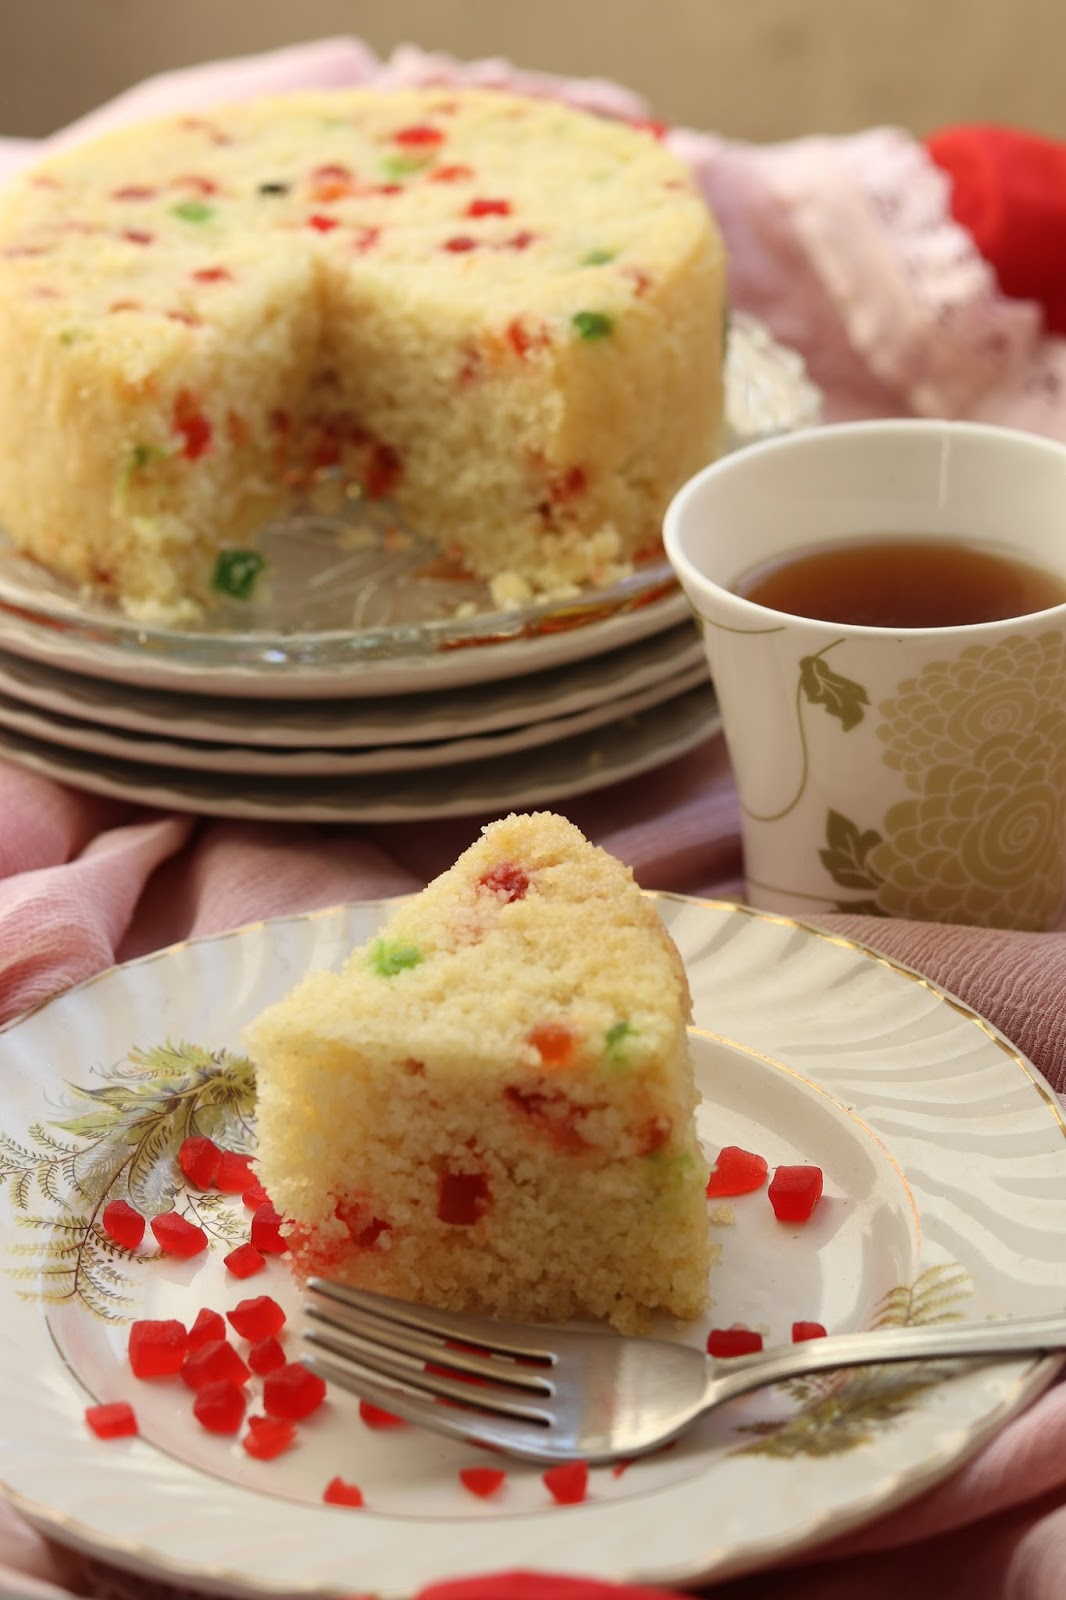 Rava cake recipe in pressure cooker healthy kadai here is the video recipe for easy reference forumfinder Choice Image